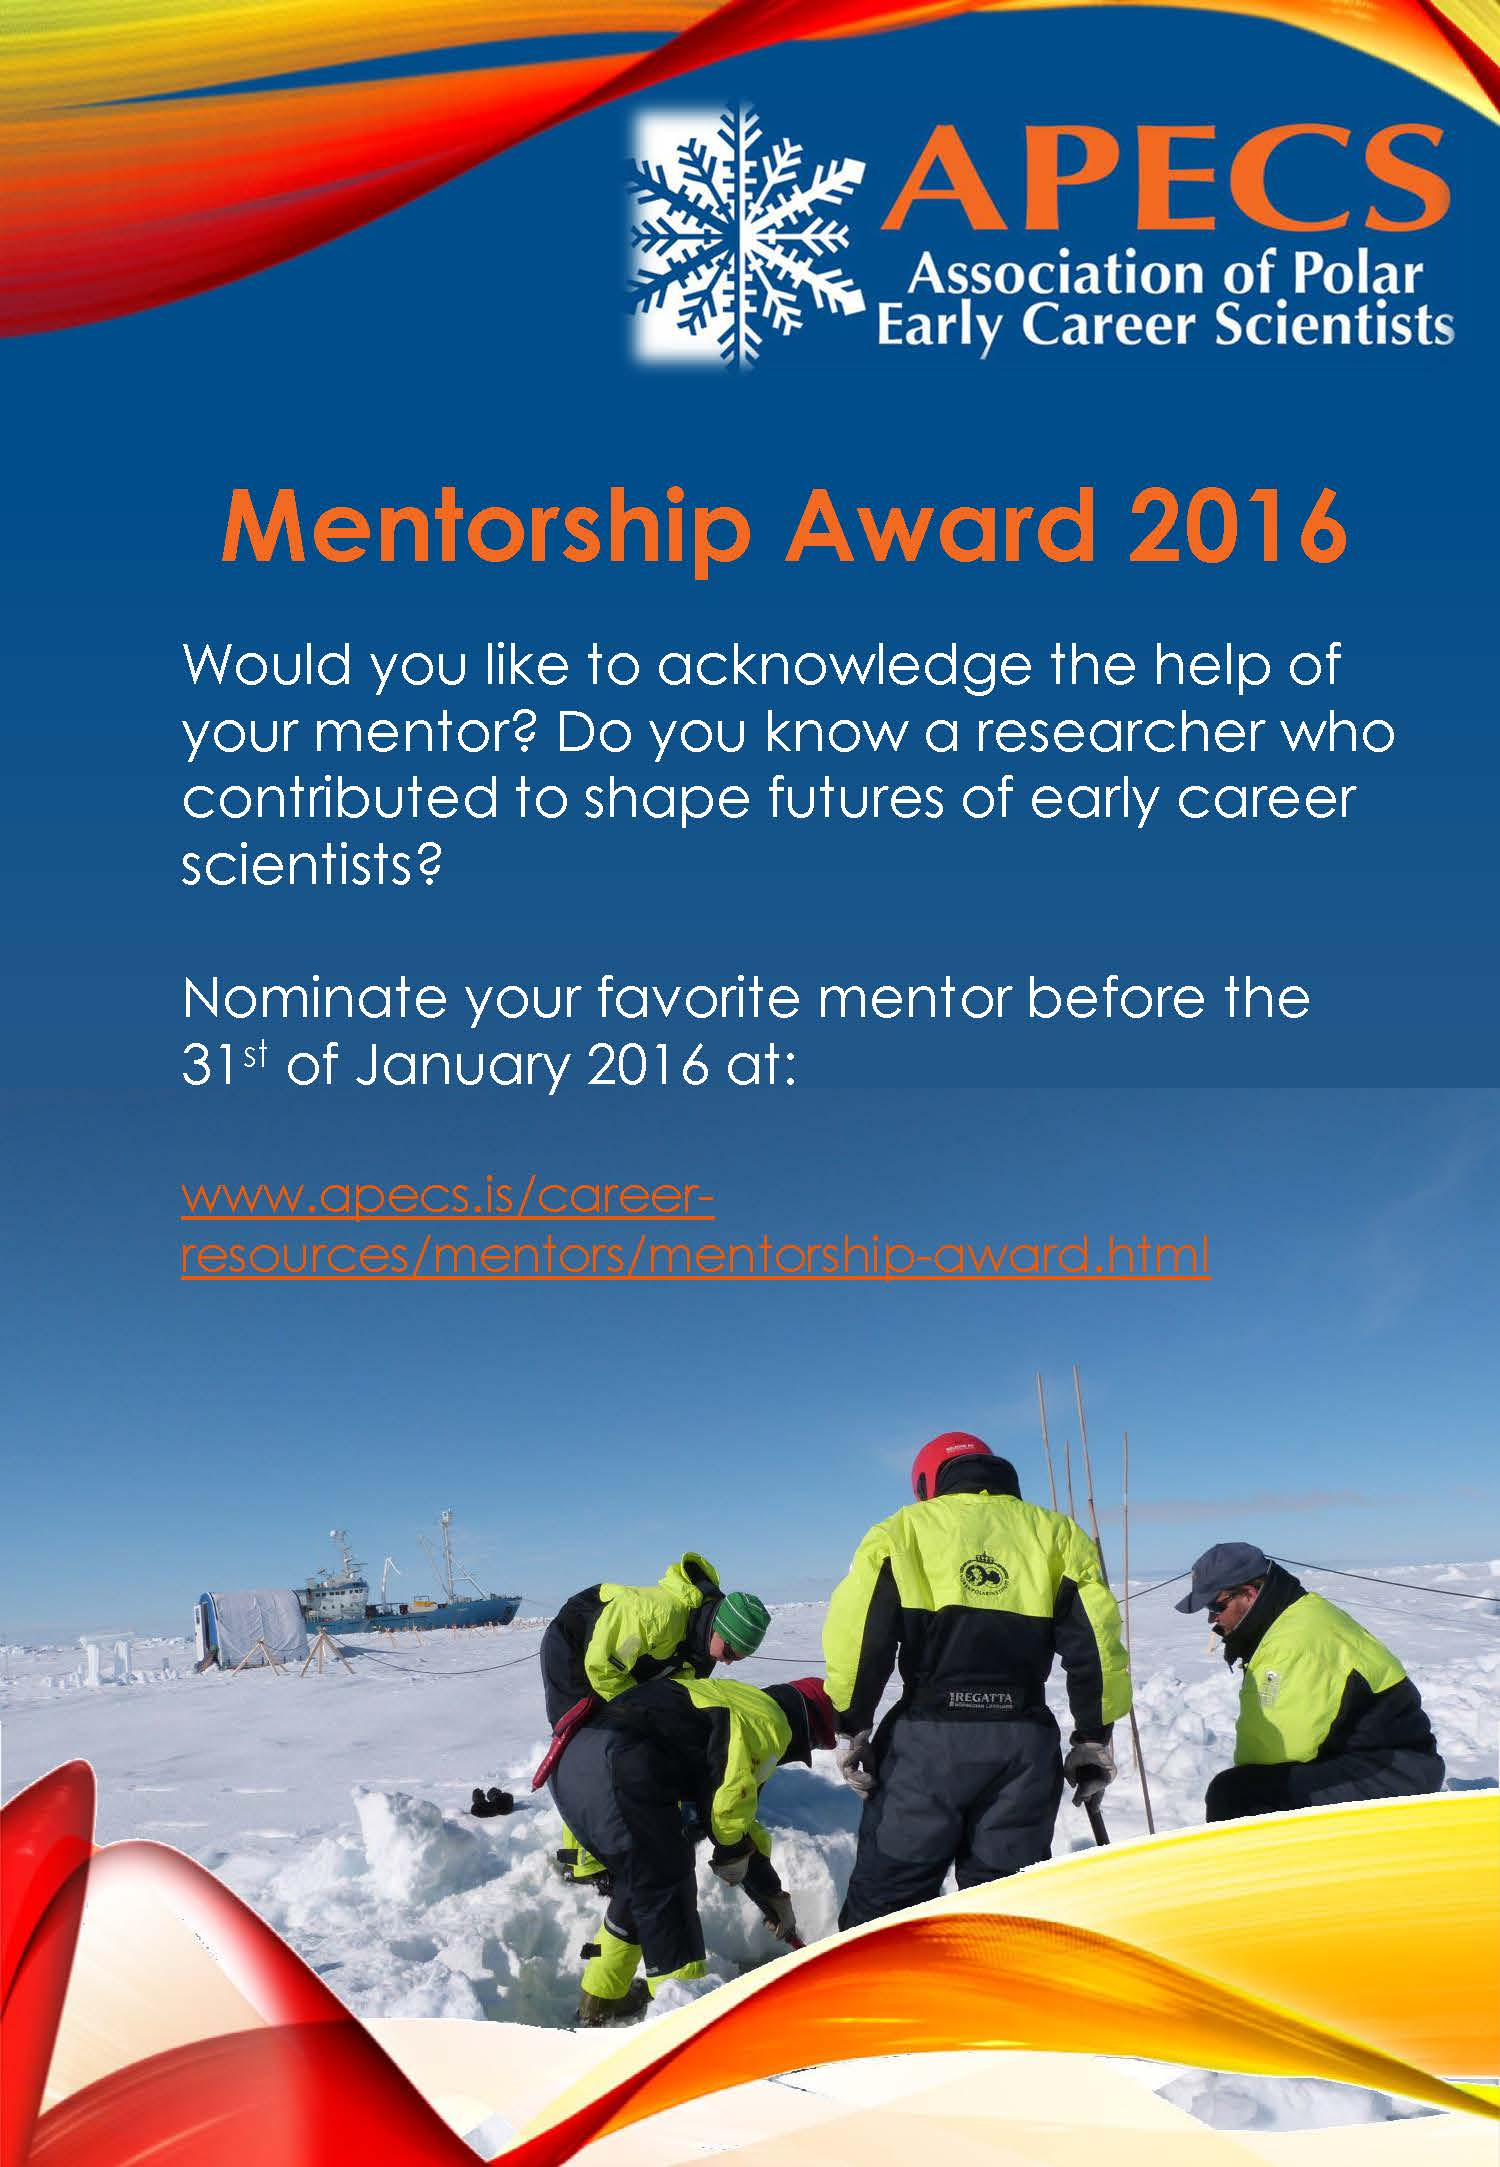 Mentorshipaward2016